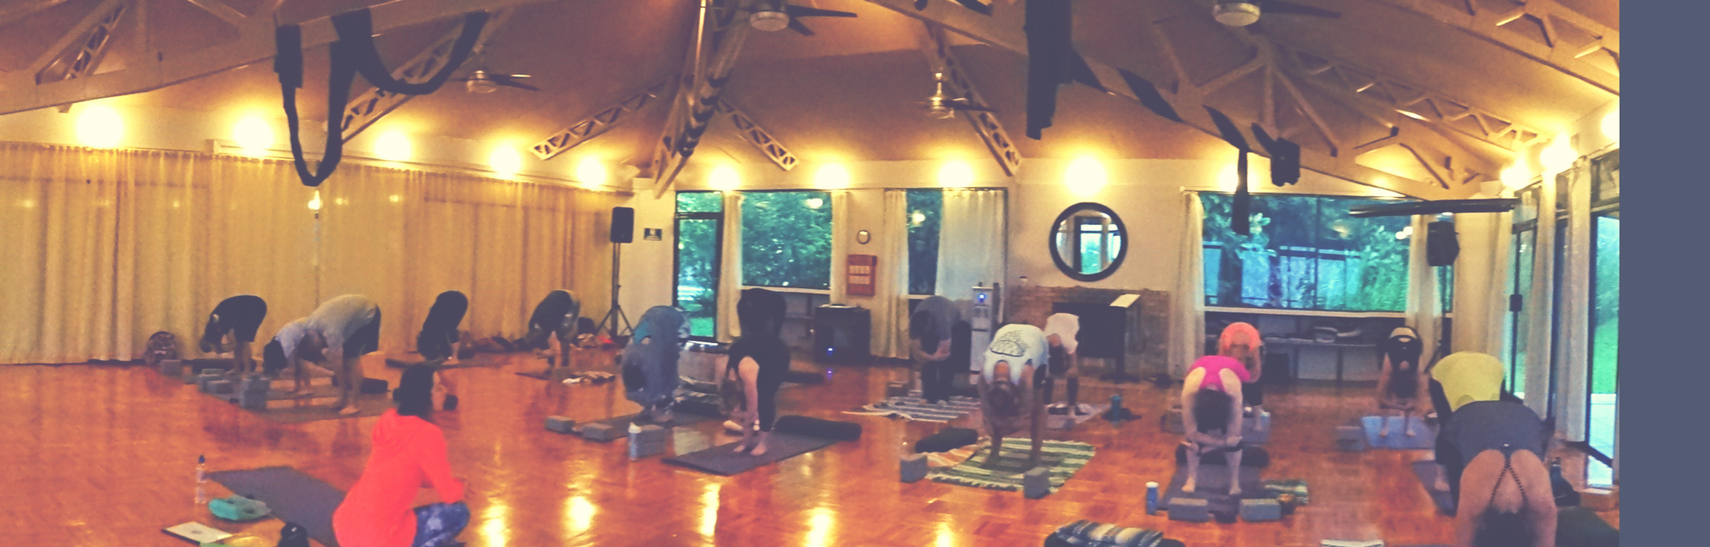 Yoga Retreats and Workshops